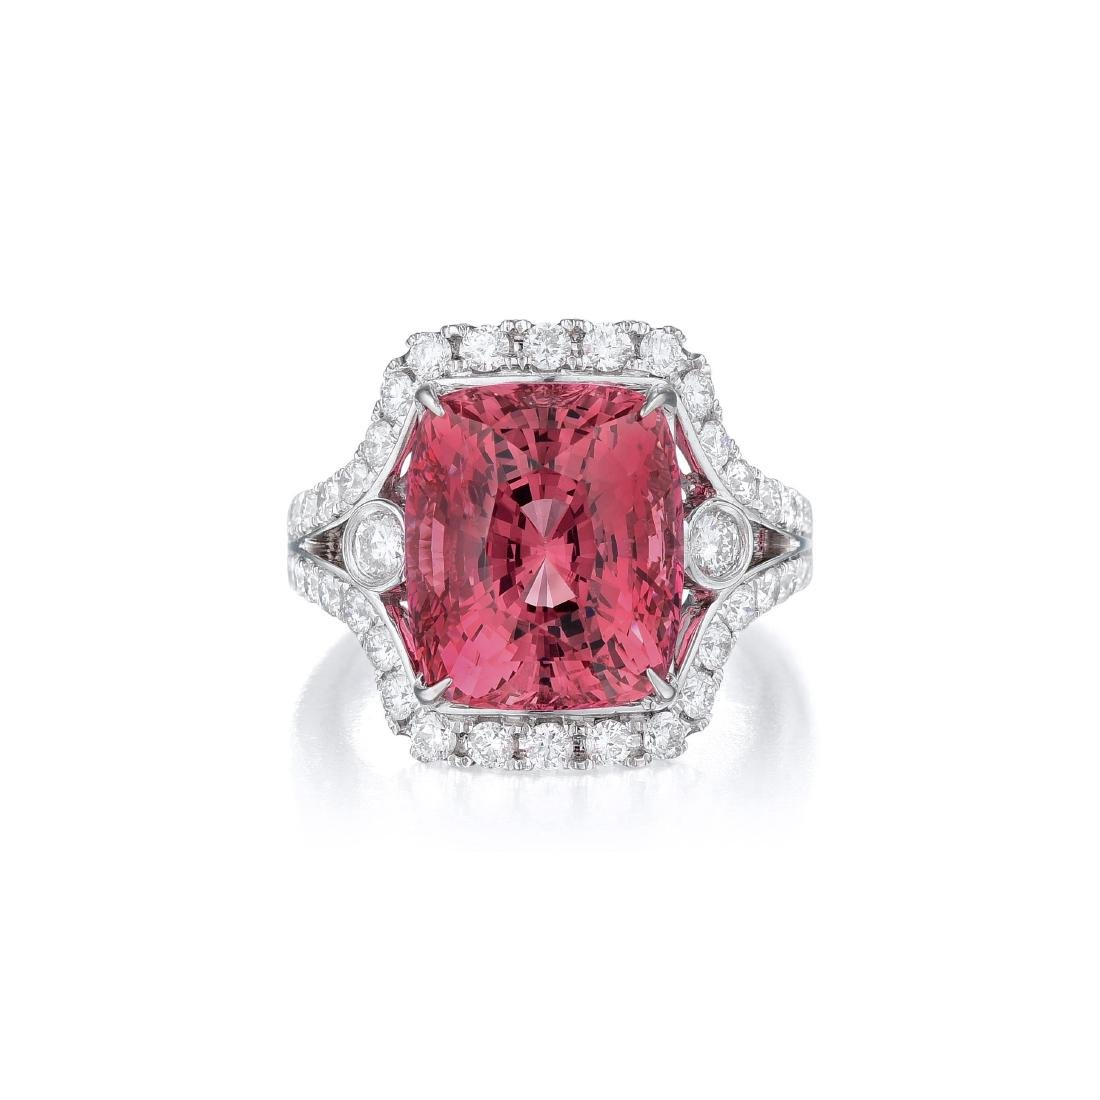 A 10.19-Carat Spinel and Diamond Ring